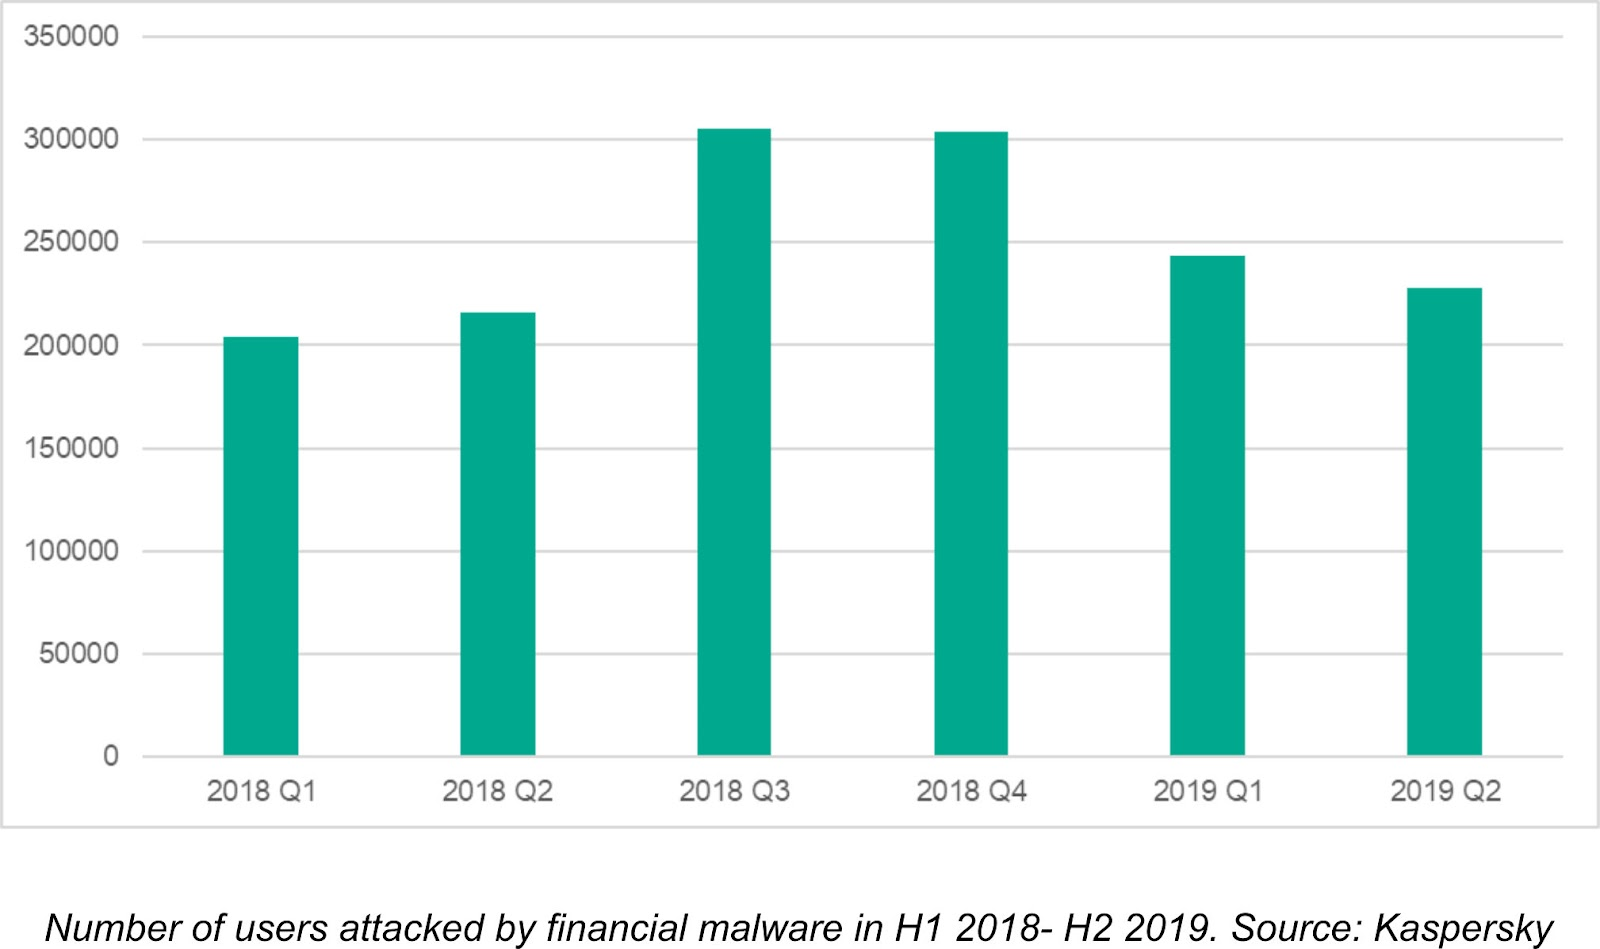 Number of users hit by financial malware grew by 7% in H1 2019 to reach 430,000 1